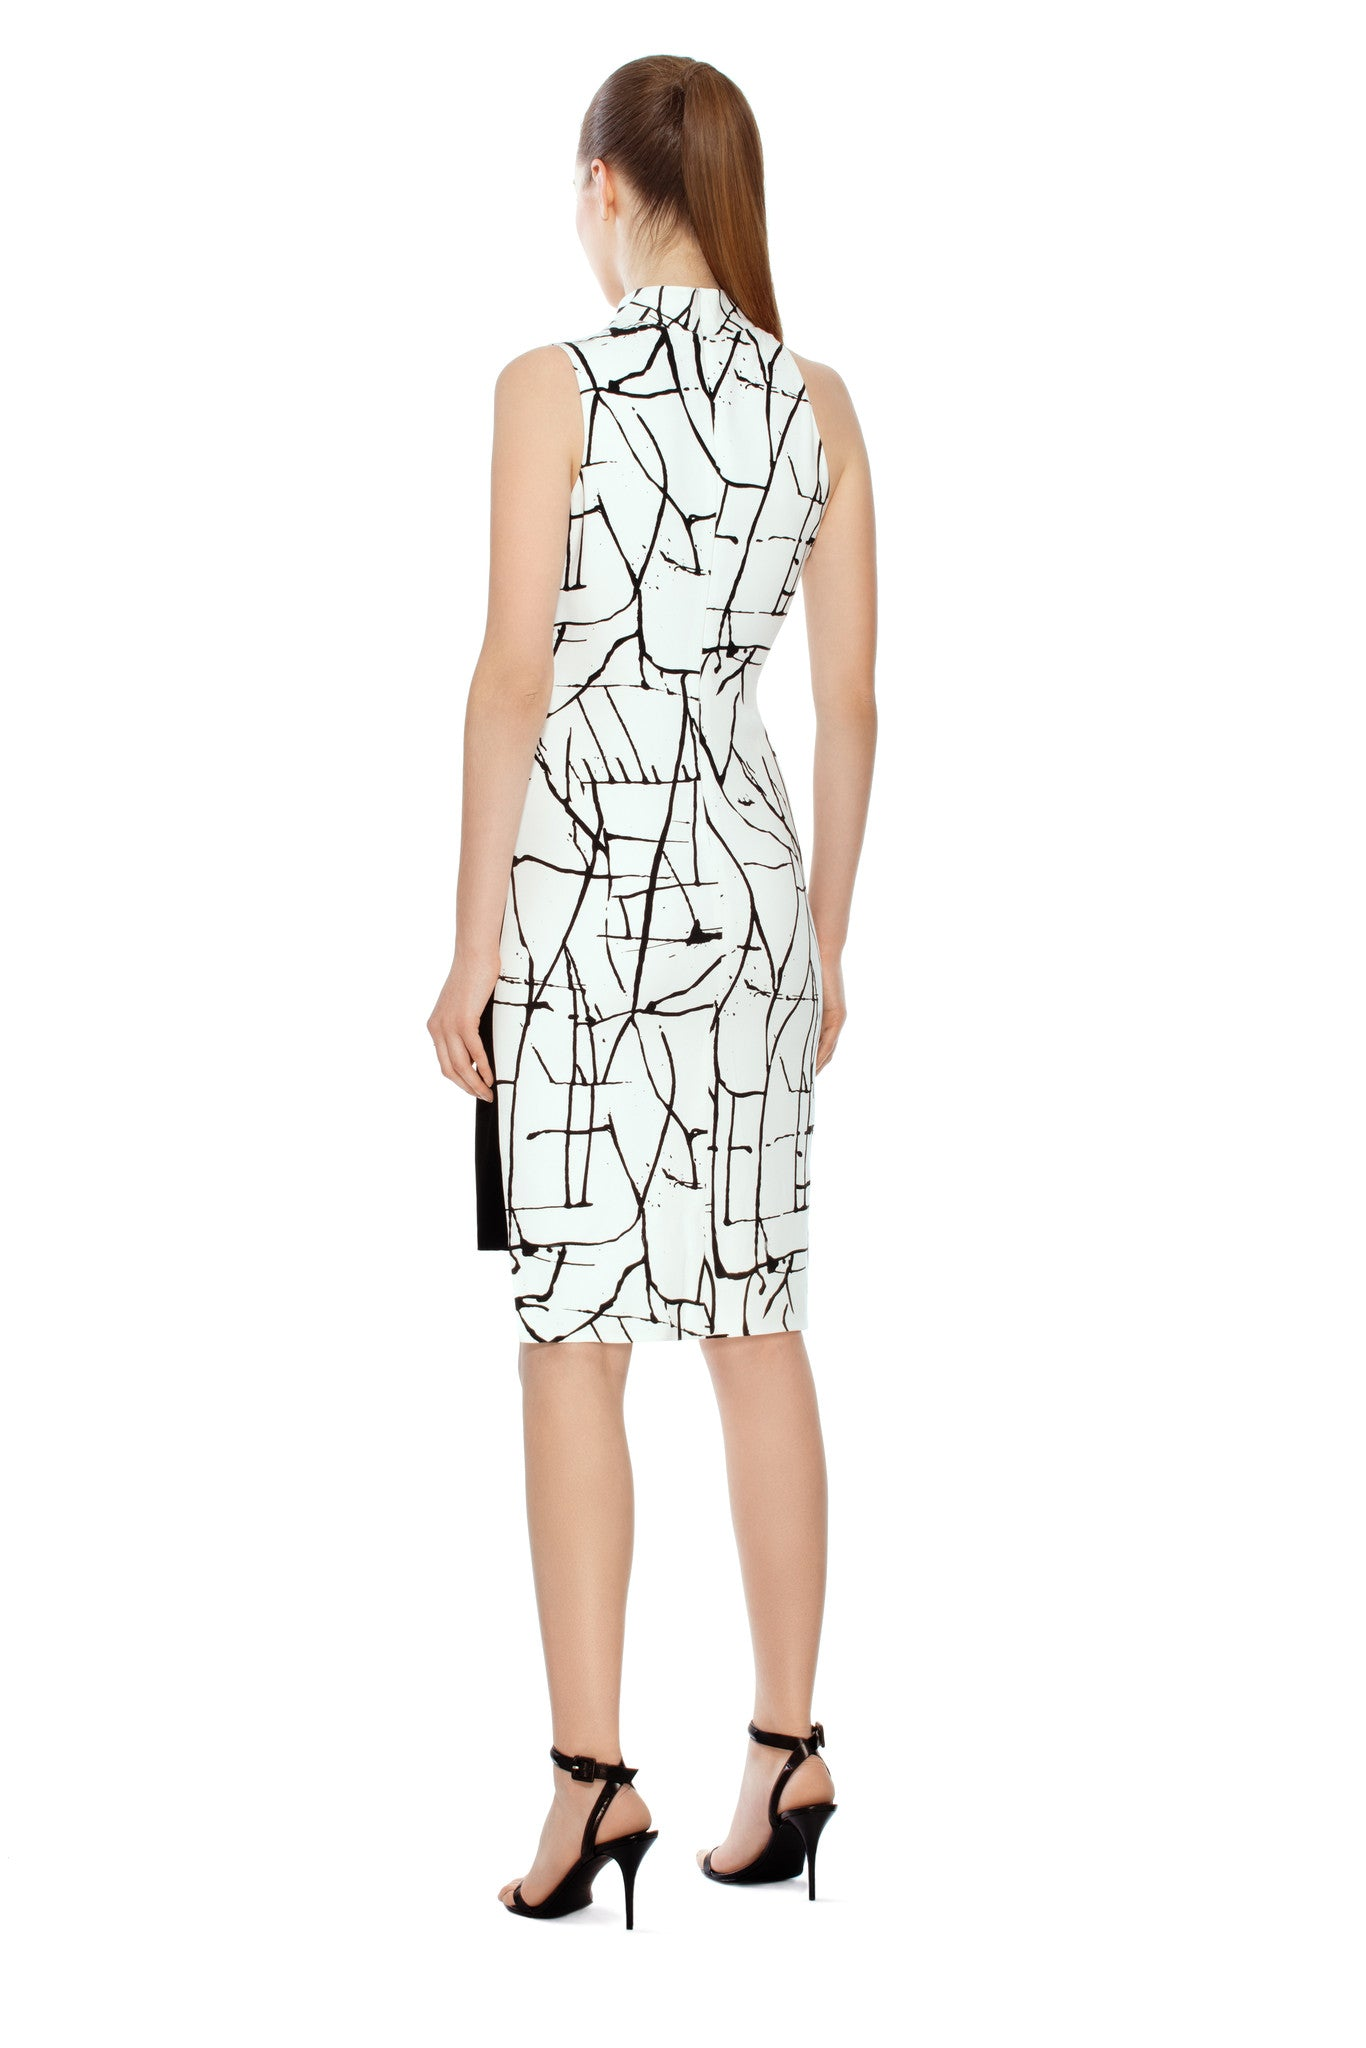 KARIGAM EQUALITY SLEEVELESS DRESS